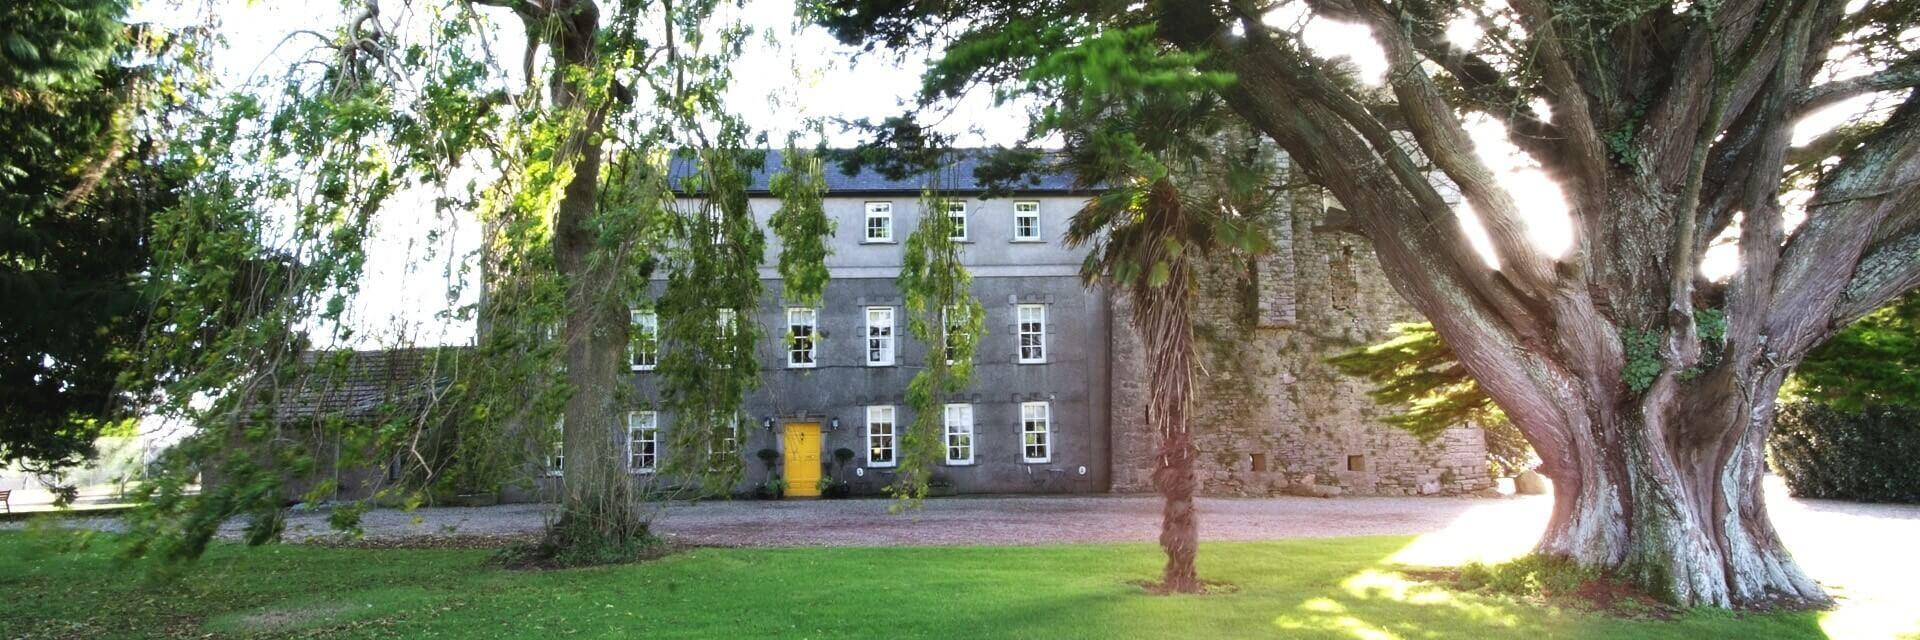 killiane castle - farmhouse accommodation in co. wexford, ireland